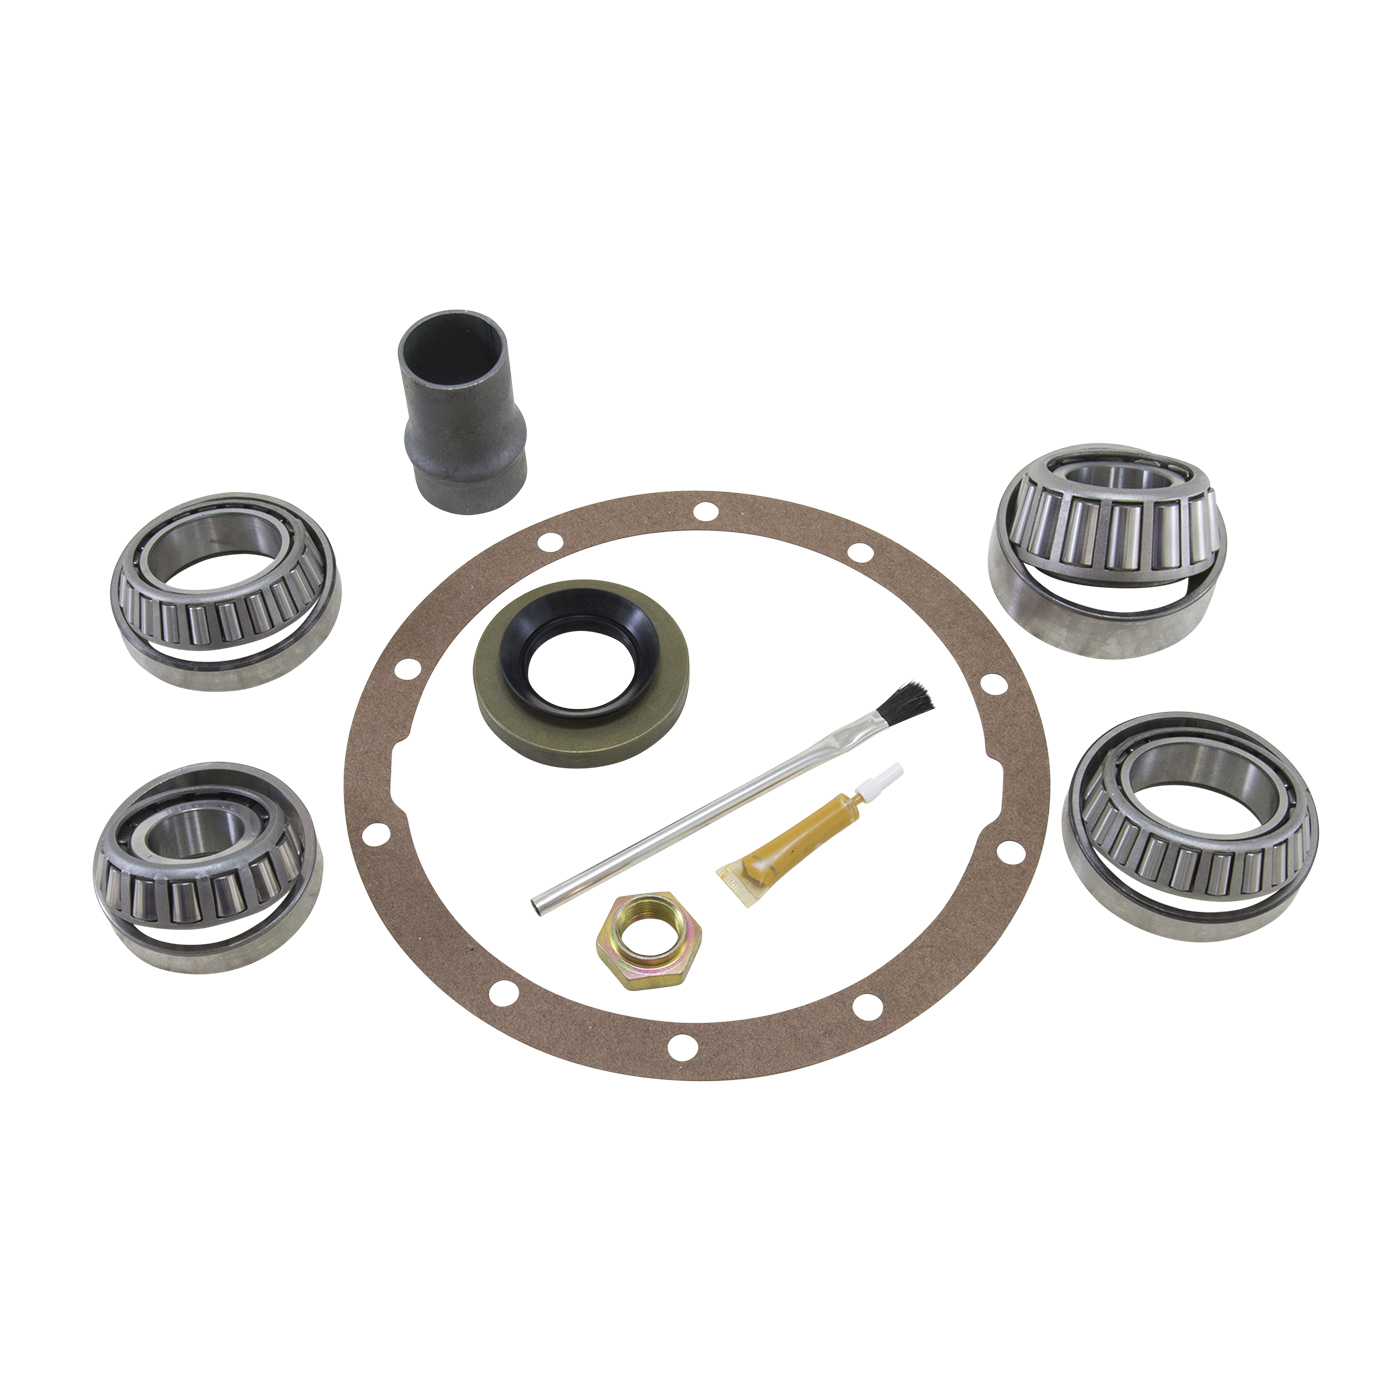 BK T8-A - Yukon bearing kit for '85 & down Toyota 8